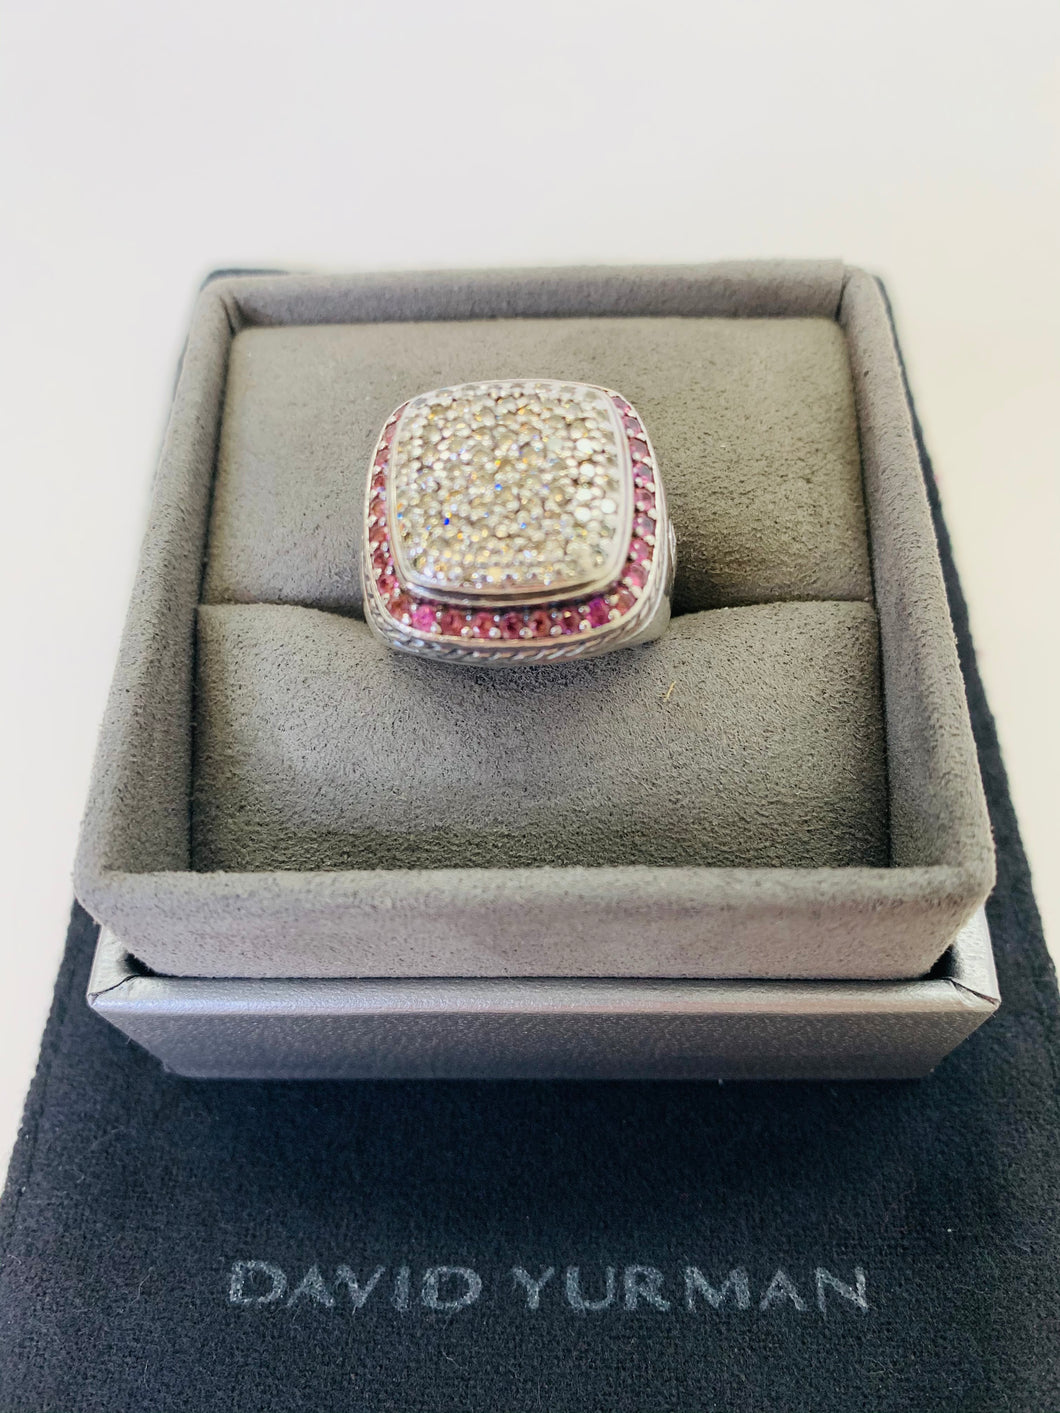 David Yurman Albion Ring Size 7